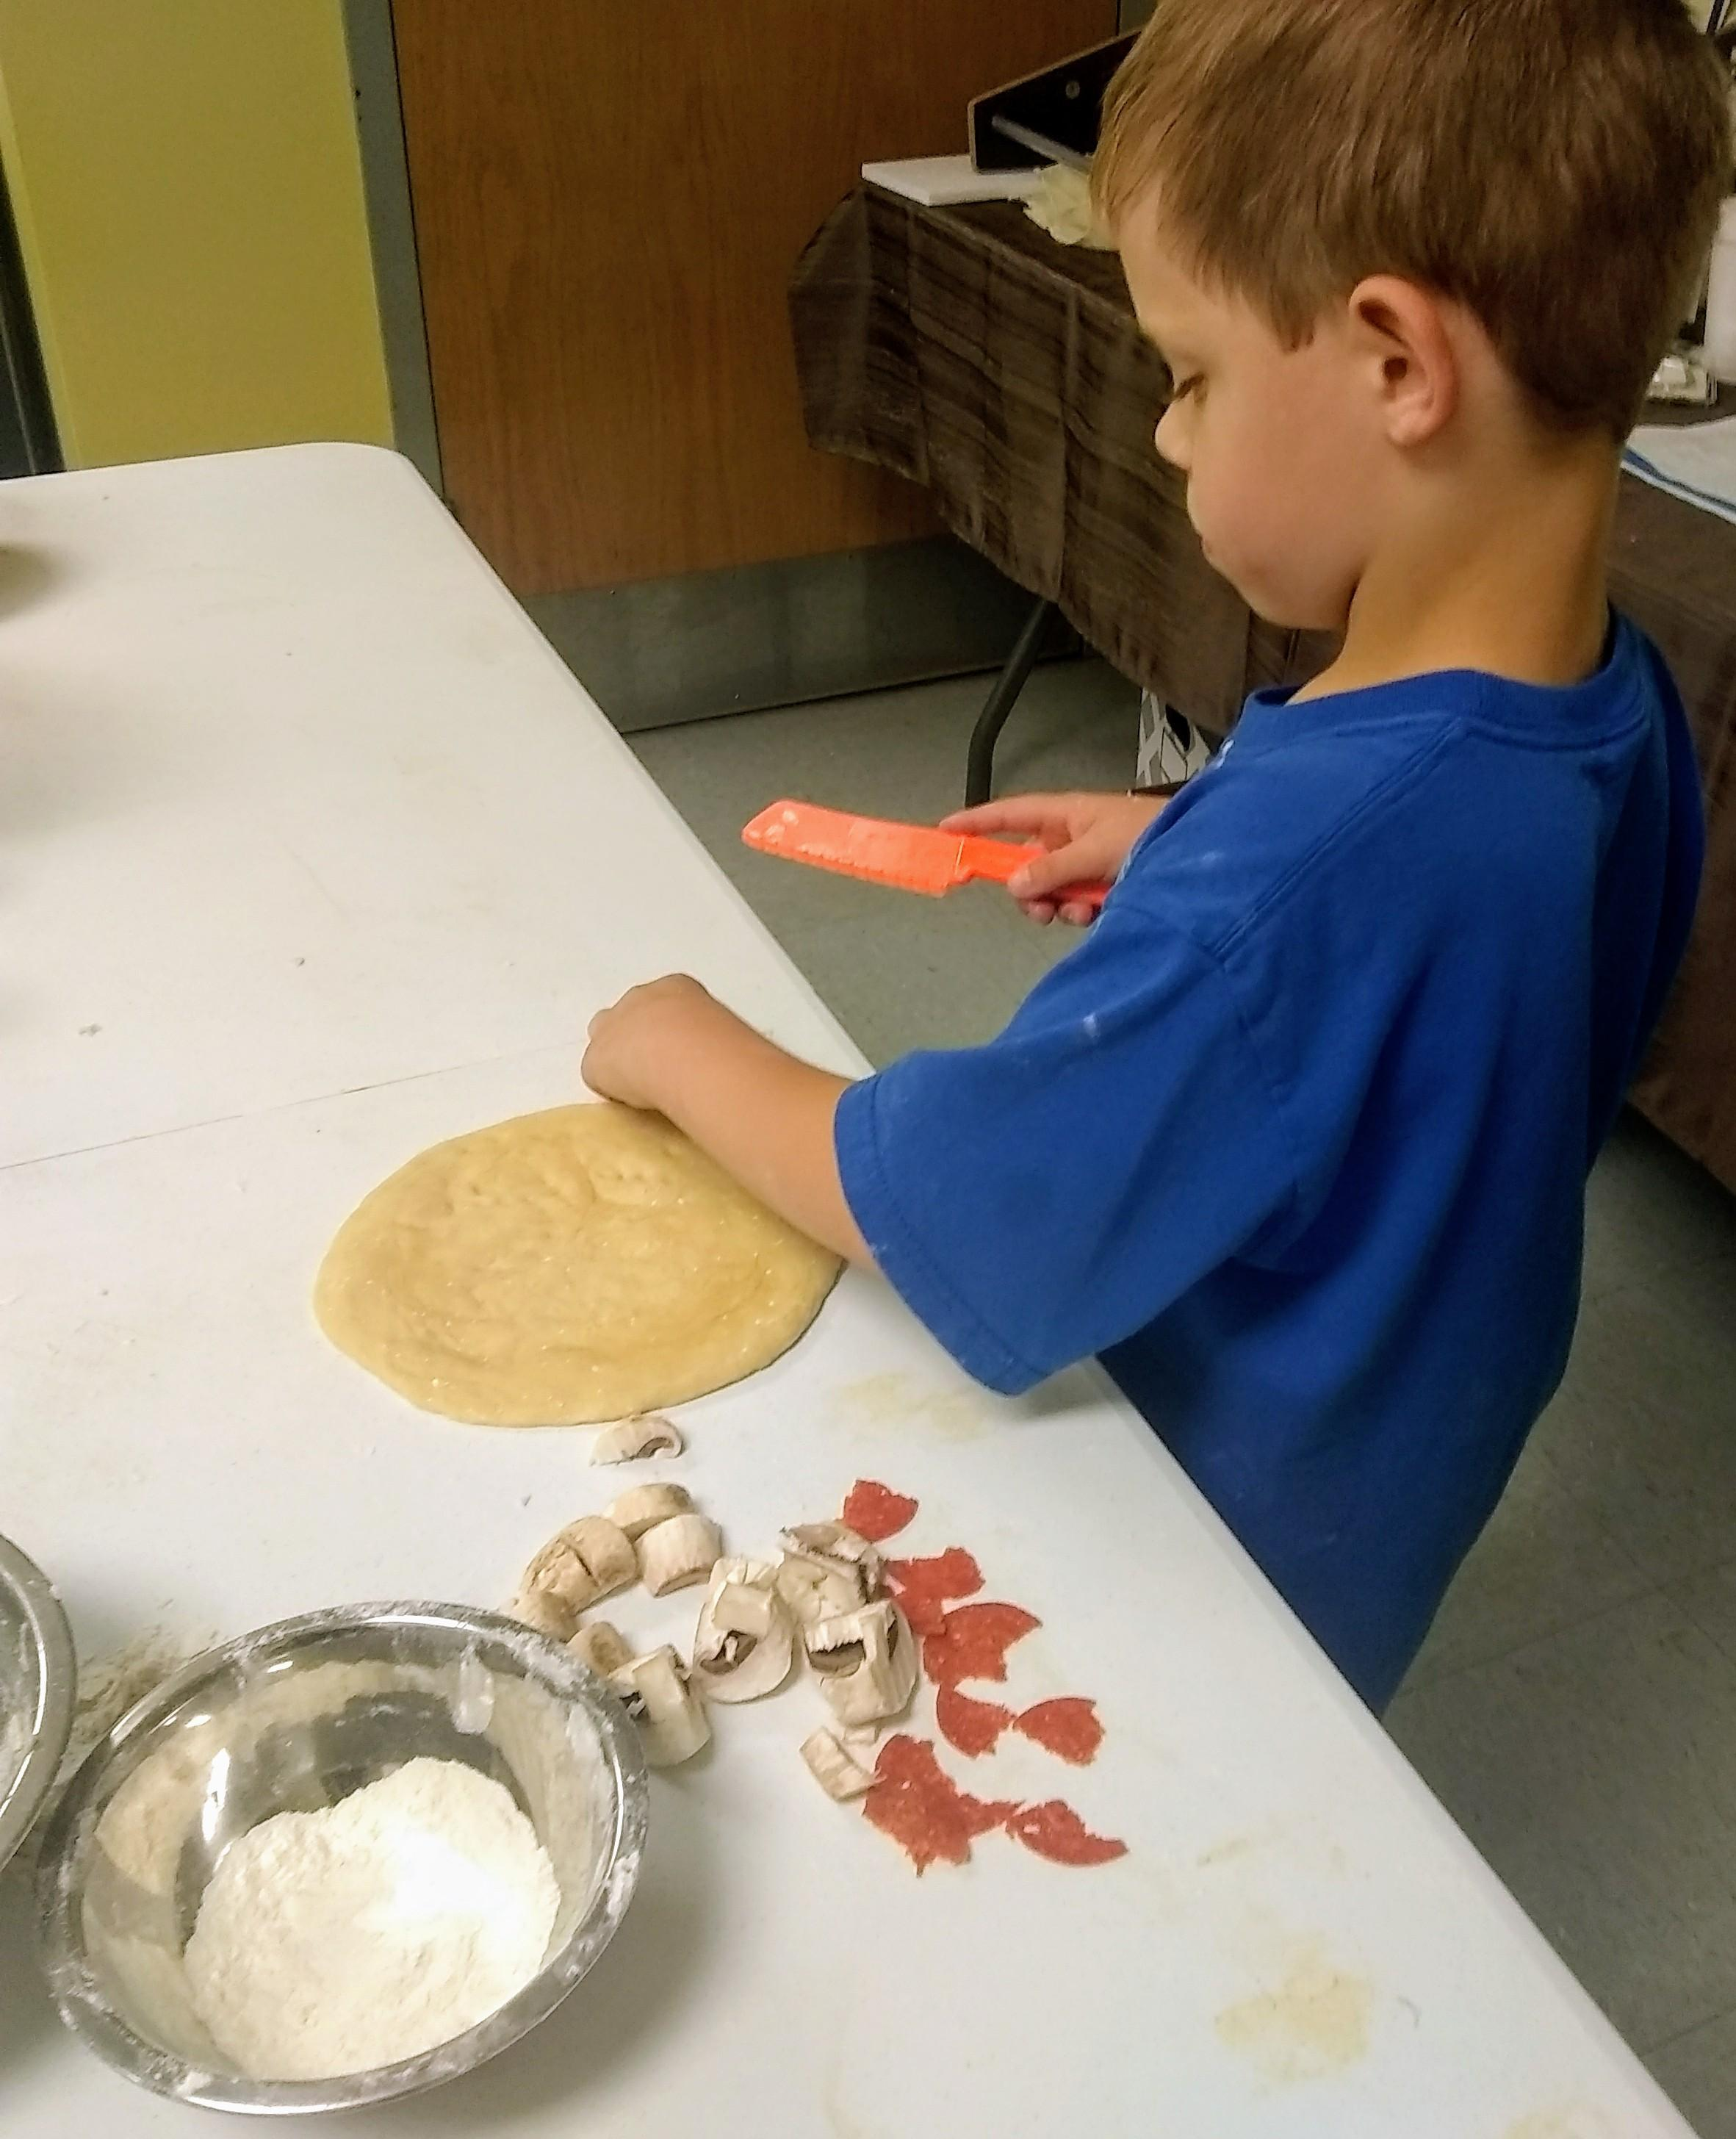 child shaping a pizza